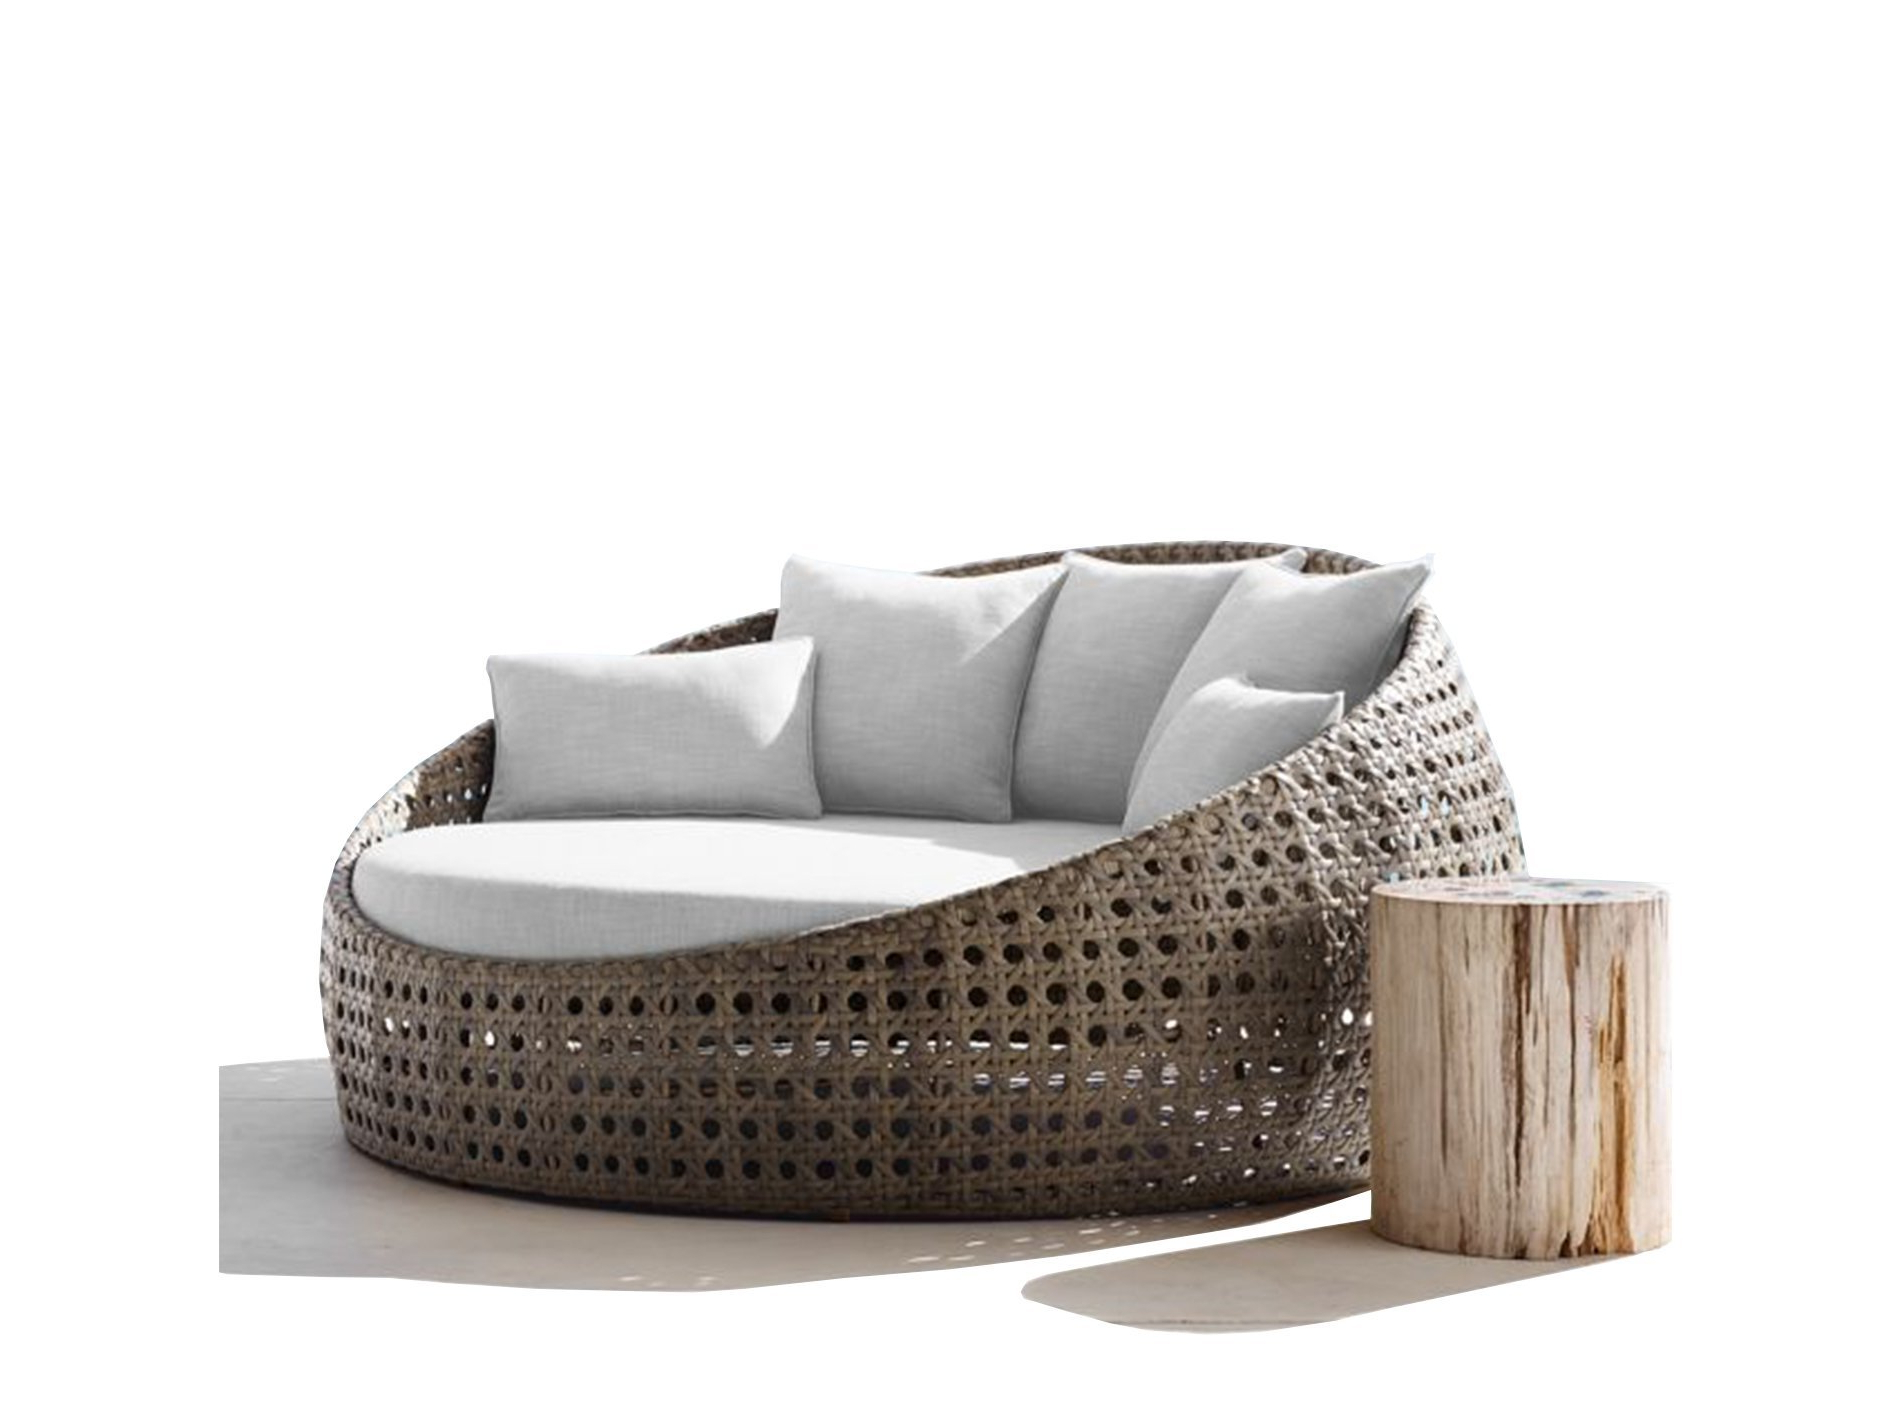 Outdoor Day Bed Encourage Round Replacement Cushions Within Well Known Ellanti Patio Daybeds With Cushions (View 9 of 25)